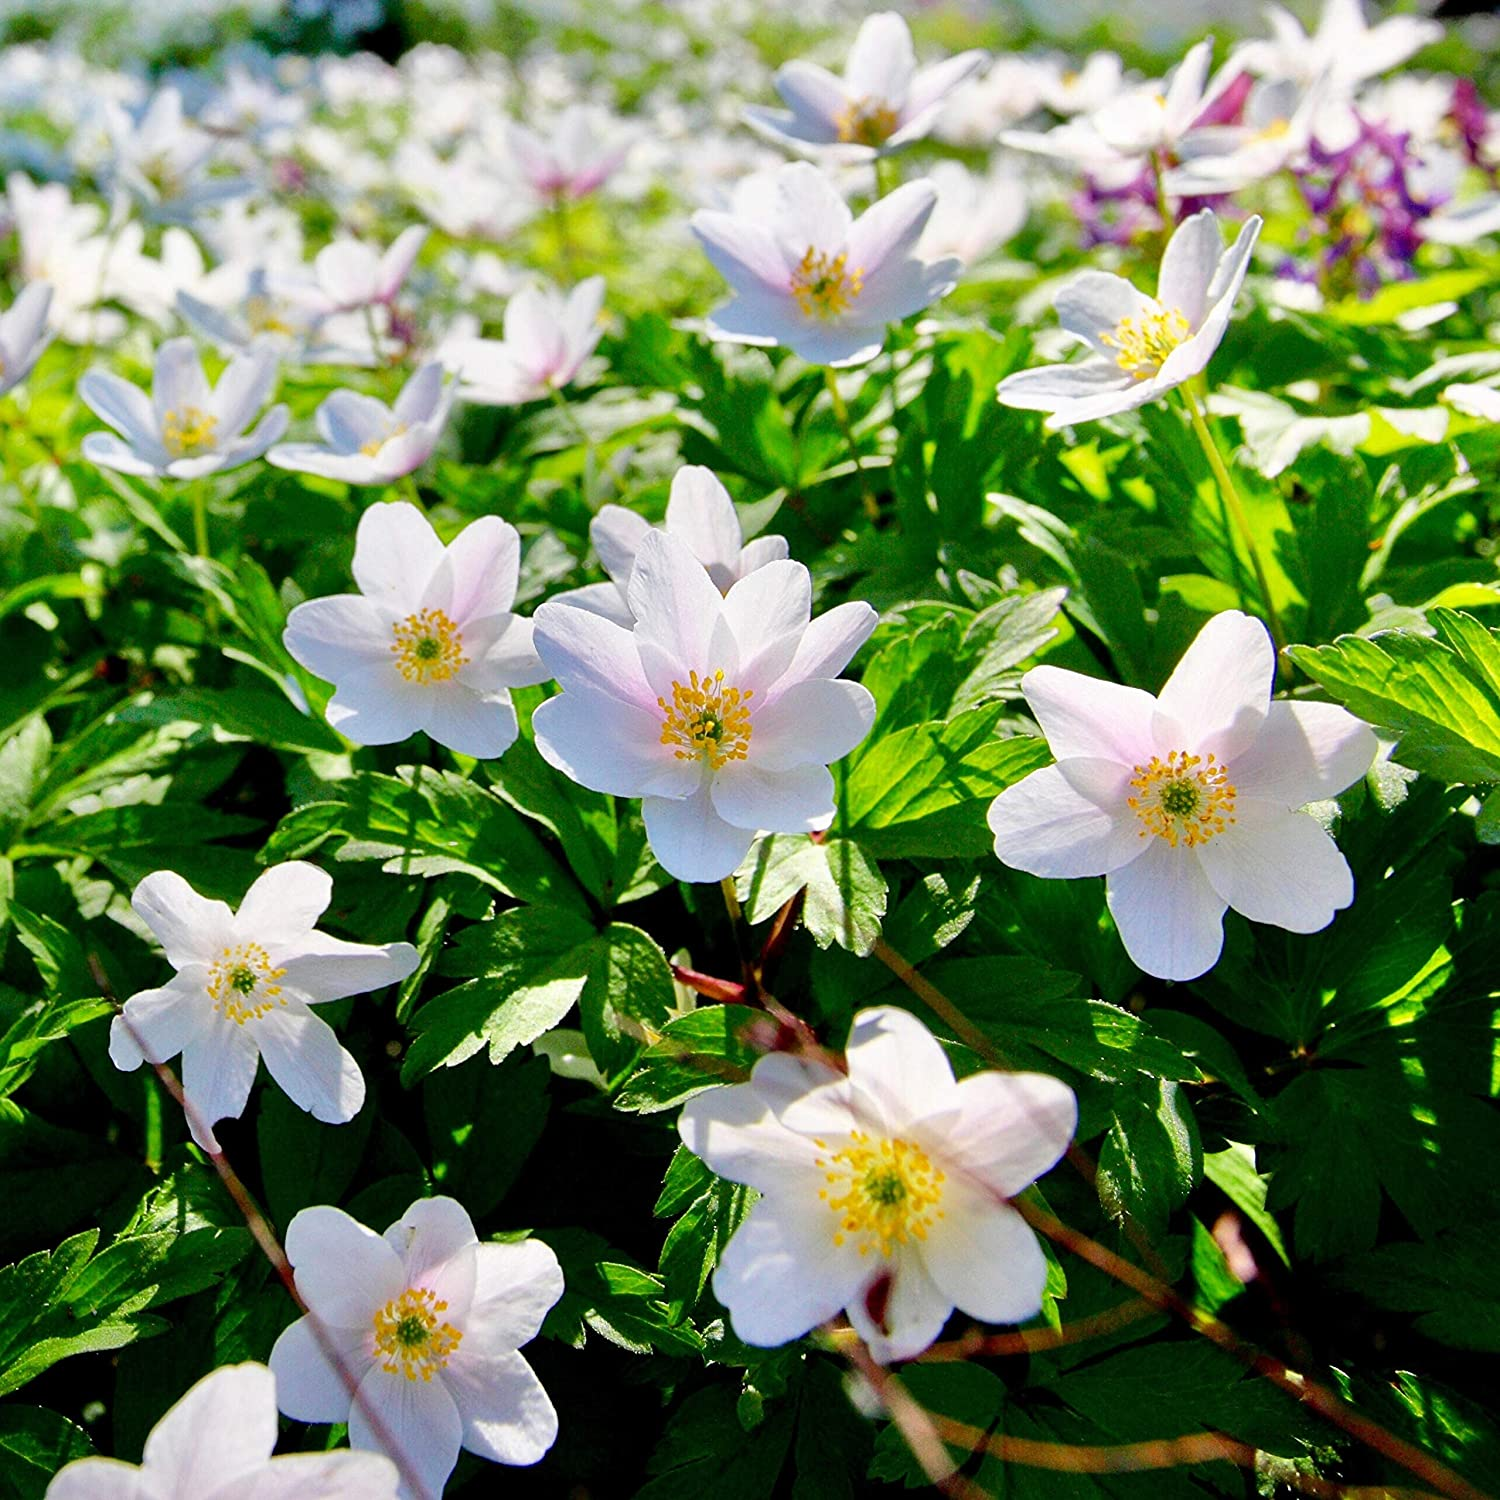 """10, /'Pagoda/' Yellow /""""Avalanche Lily/"""" /""""Trout Lily/"""" Spring Flowering Bulbs Woodland bulbs/® 10 x Erythronium /'Pagoda/' Dog/'s Tooth Violet Free UK P/&P"""